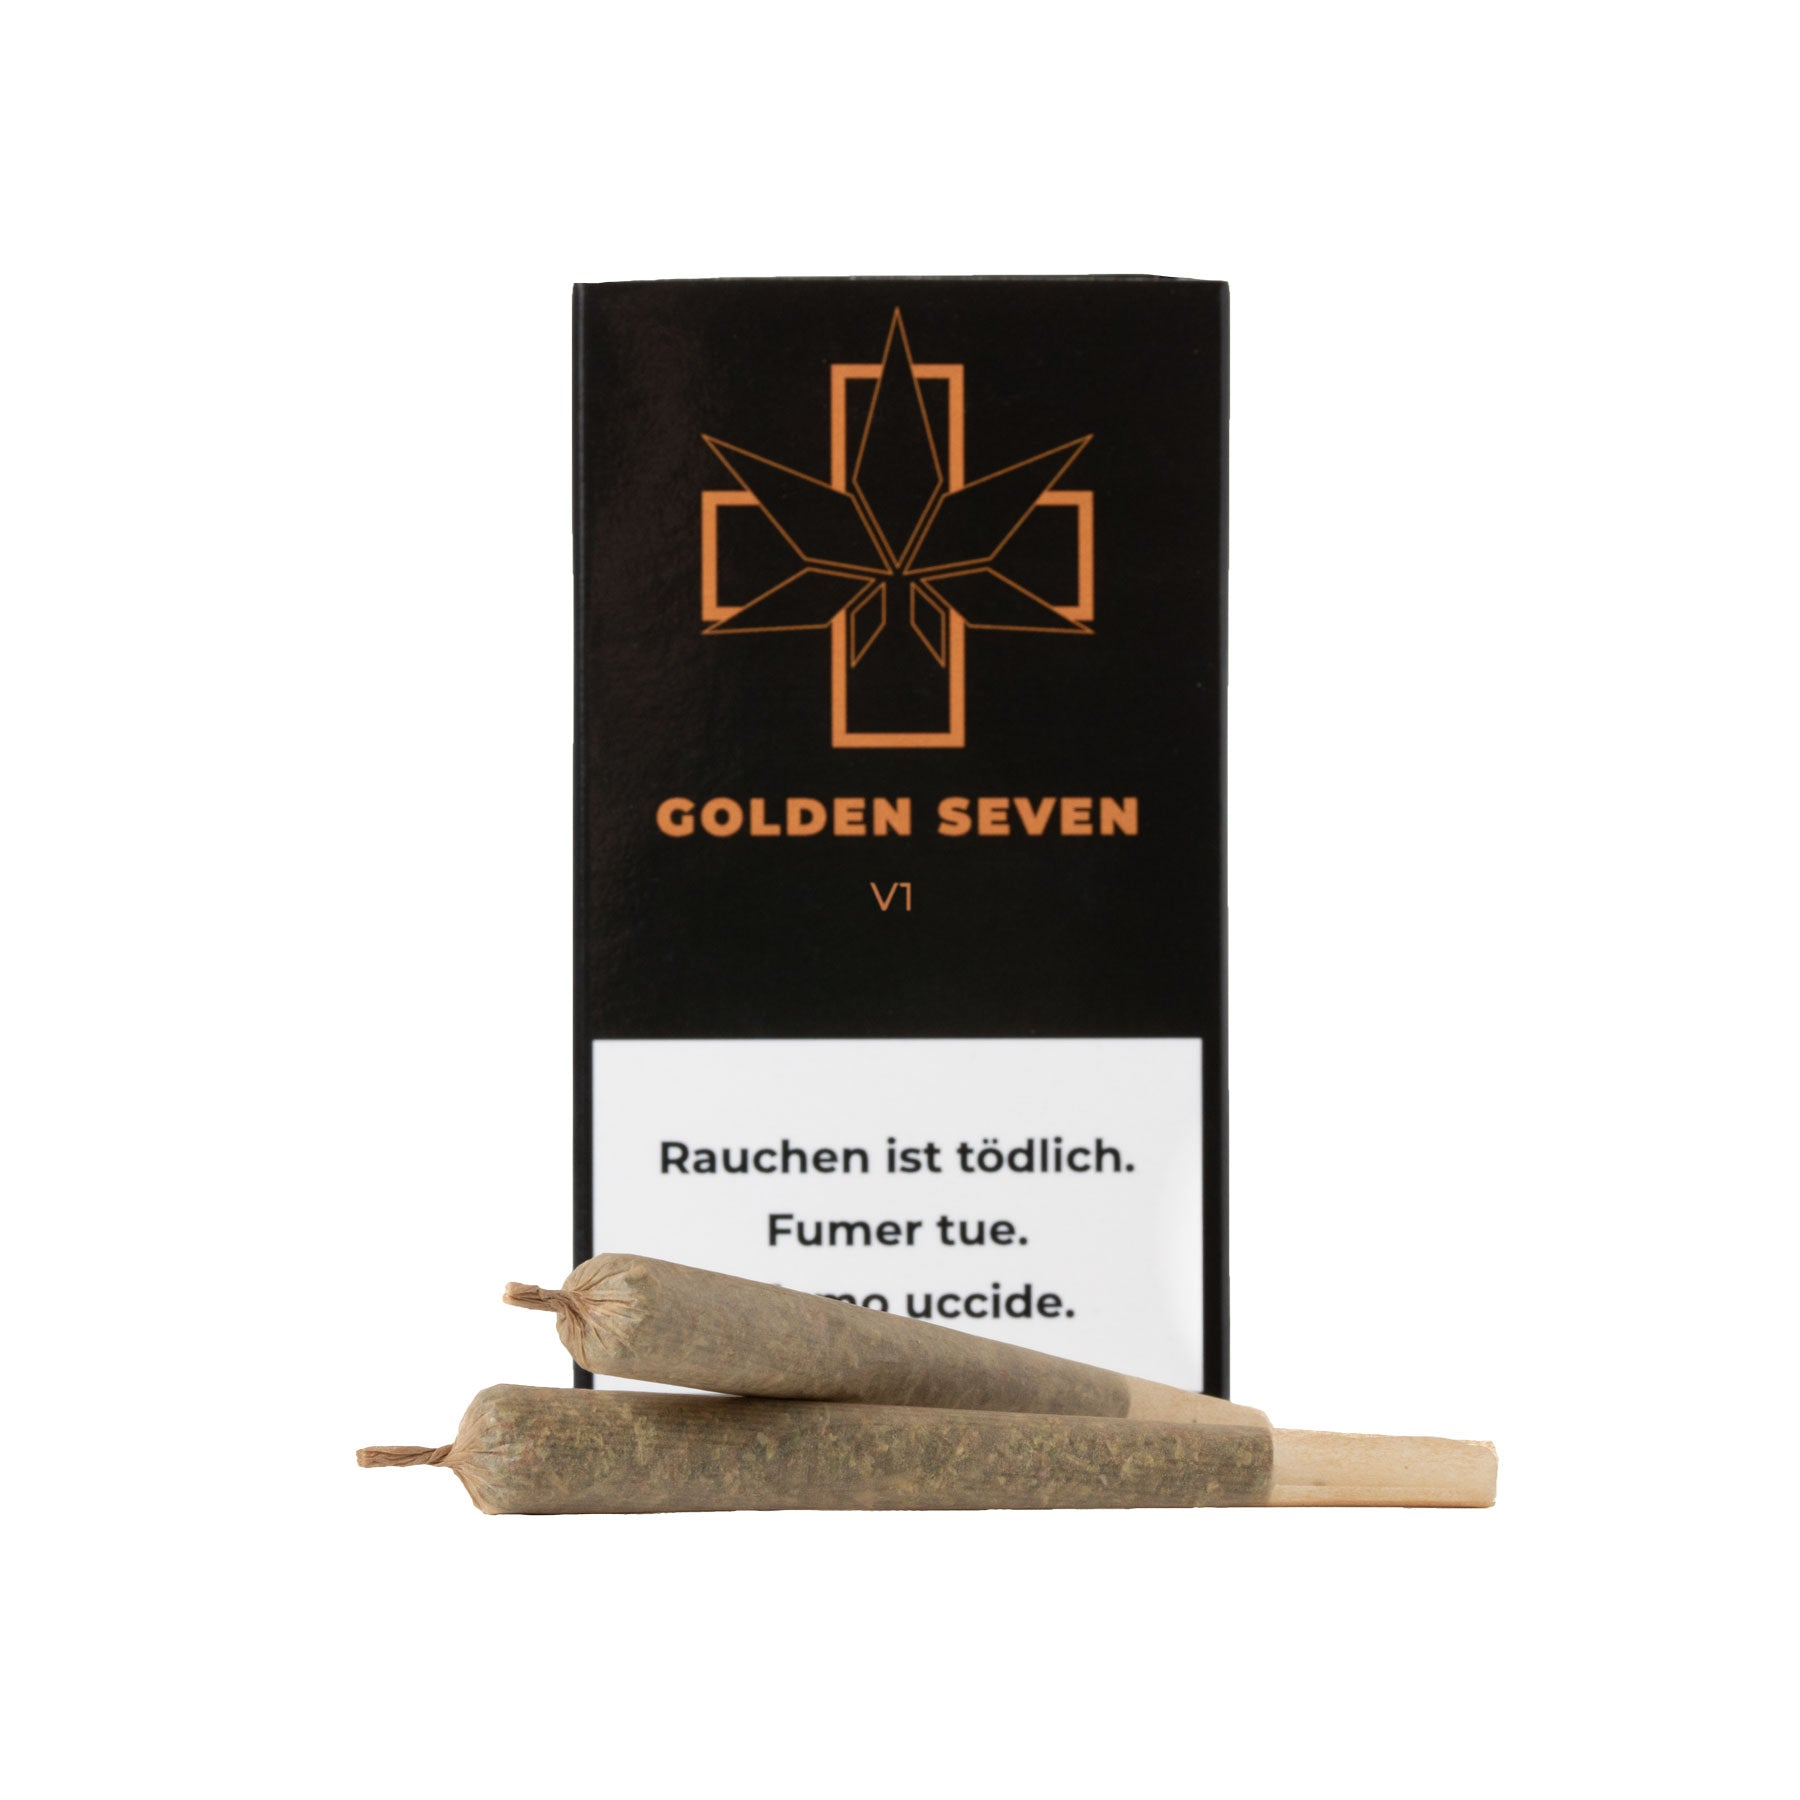 V1 CBD Joints-Pre-Rolls-Golden Seven-Swiss CBD Shop-uWeed